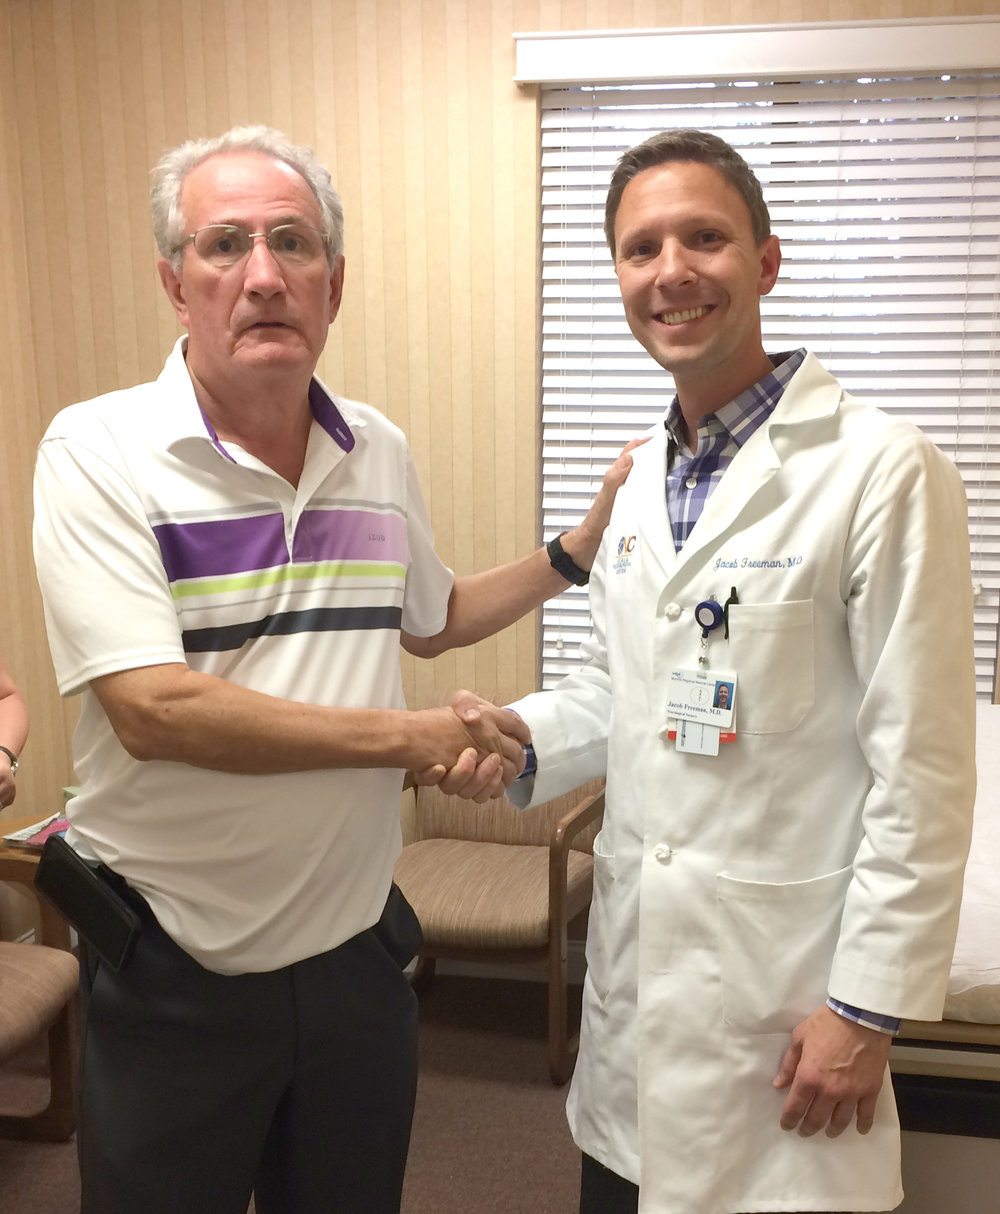 """Dr. Freeman helped give me my life back."" - – William McCarty"